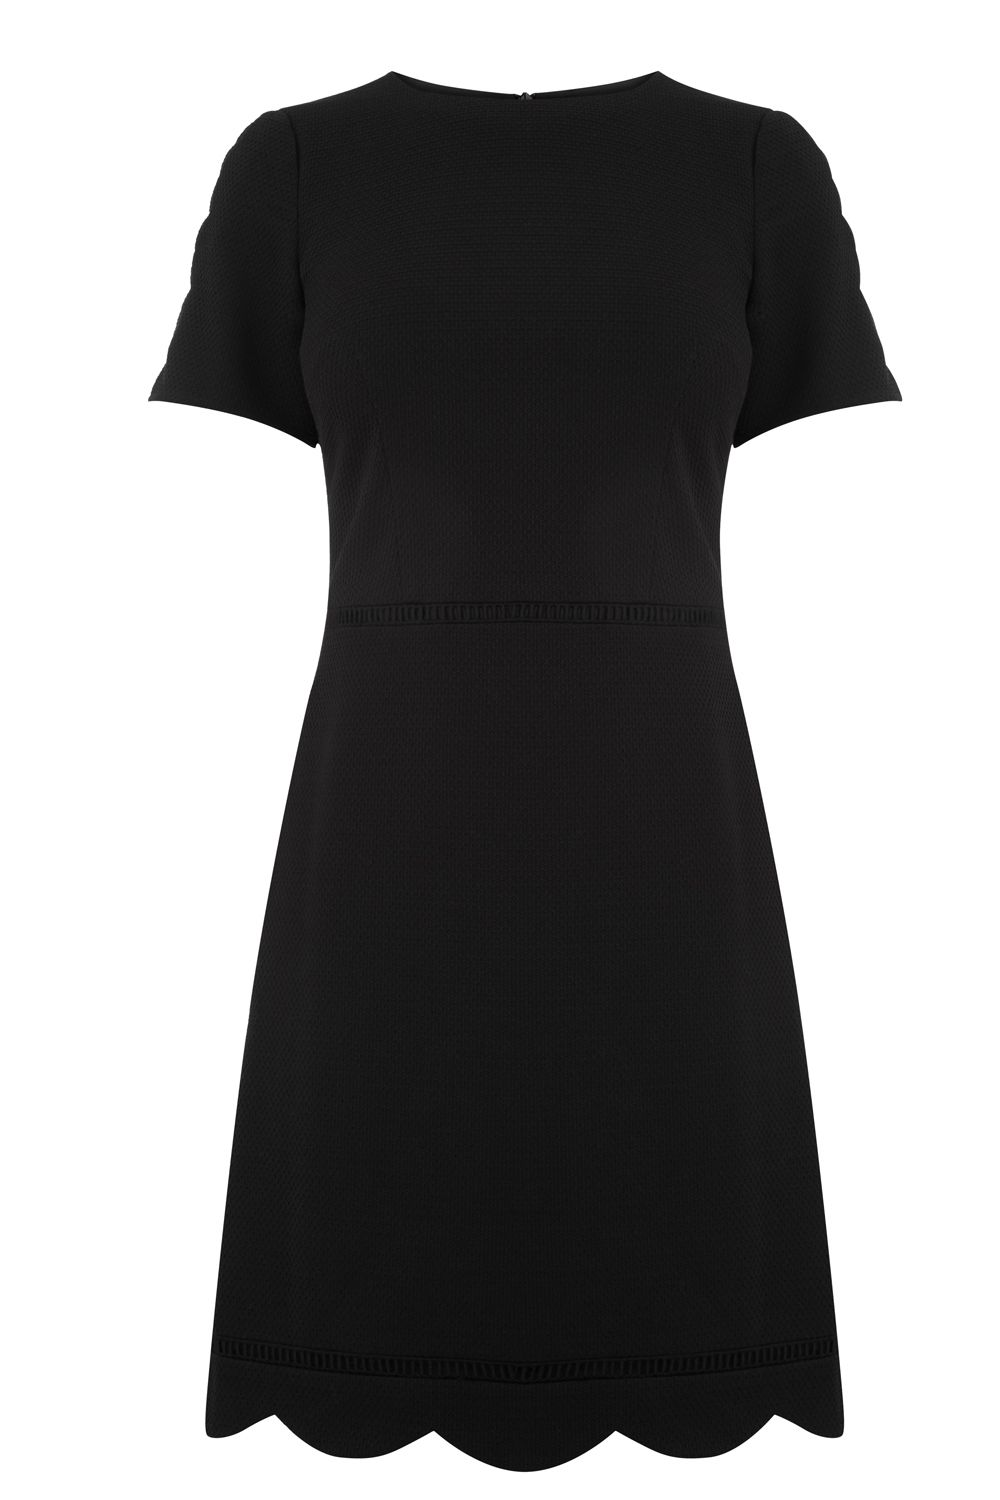 Oasis SCALLOP SLEEVE DRESS, Black